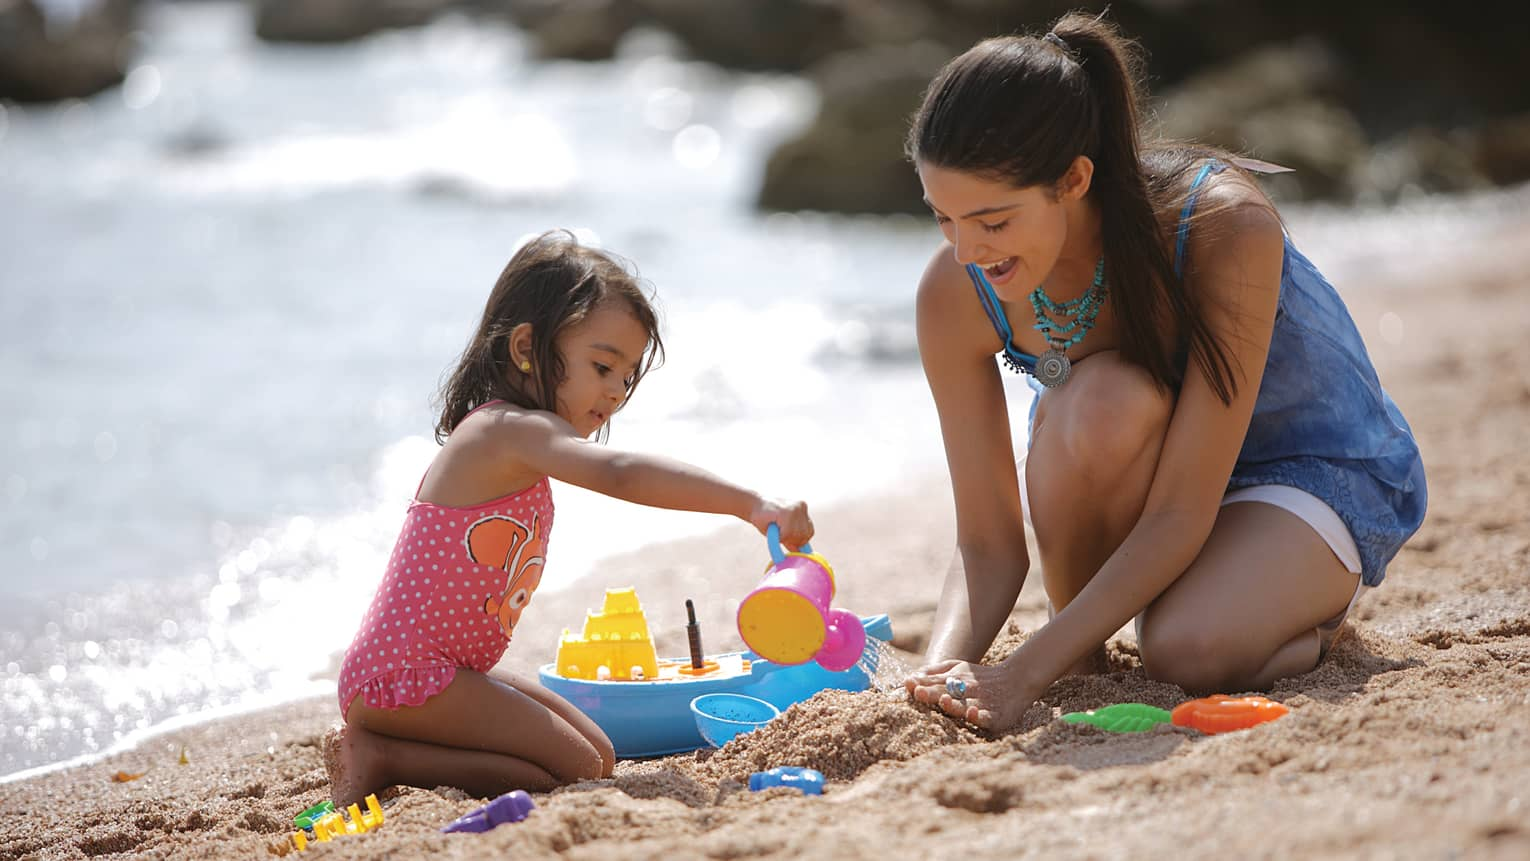 Woman helps young girl build a sandcastle on beach